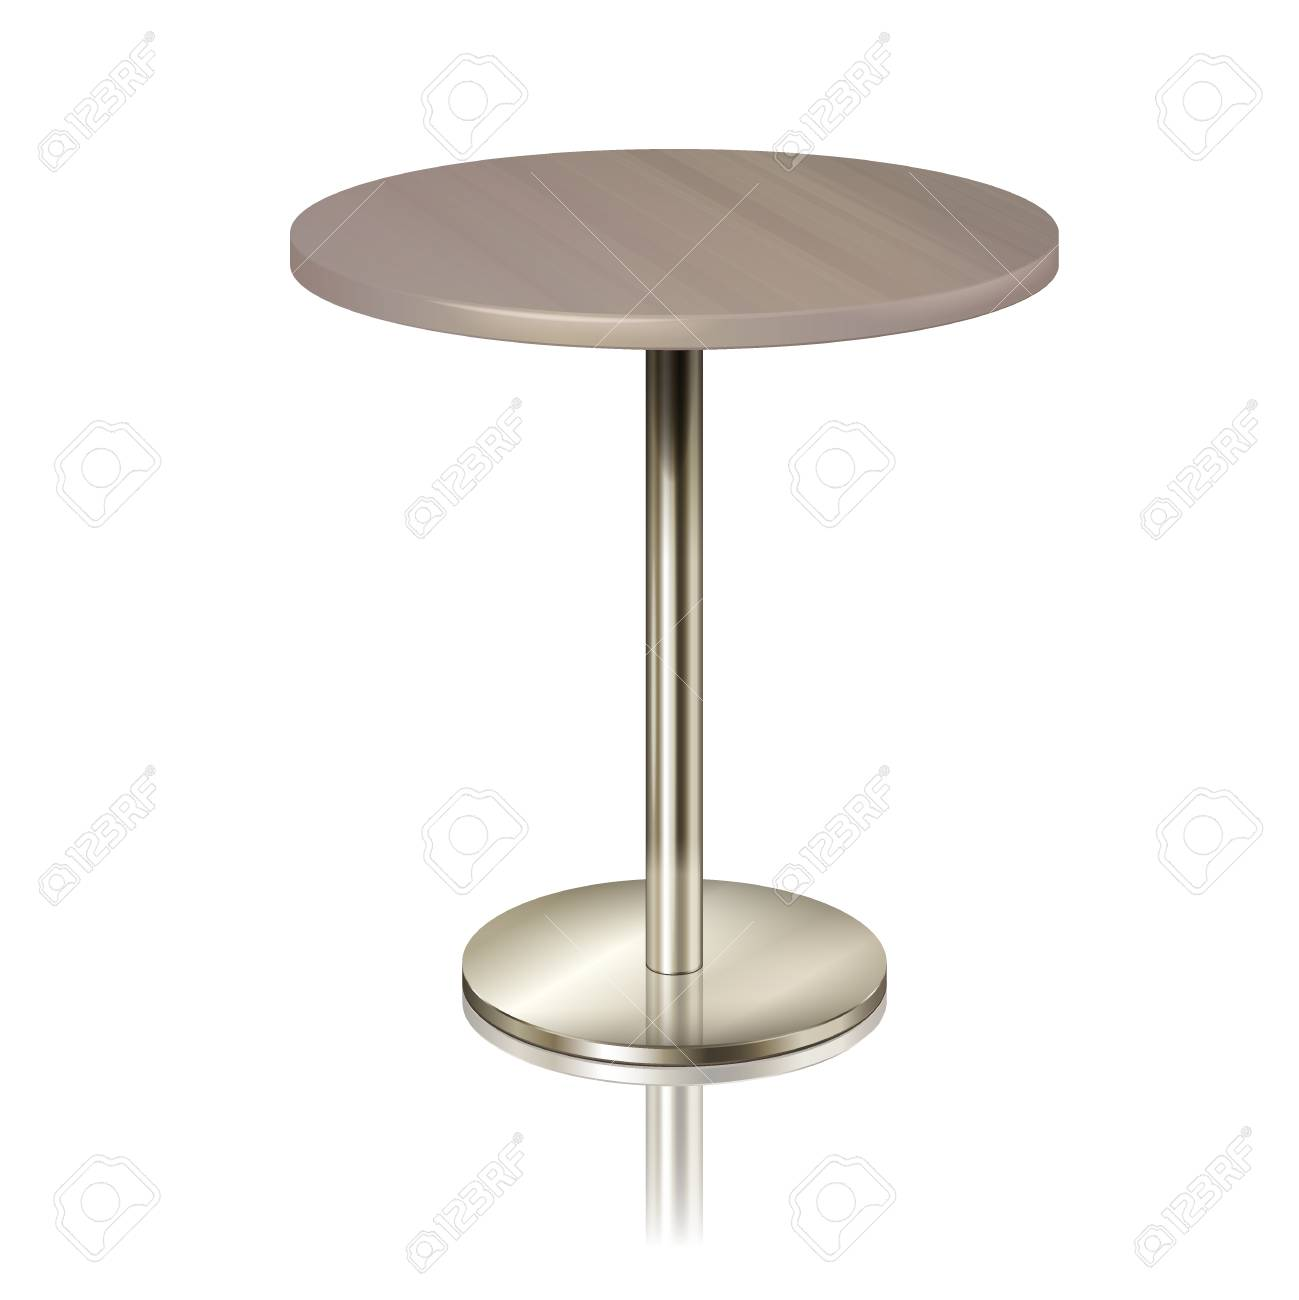 Round table on a chrome metal stand, without a tablecloth. Furniture for a restaurant, cafe, diner and exhibition isolated. furniture for public place interior, vector illustration - 127046542